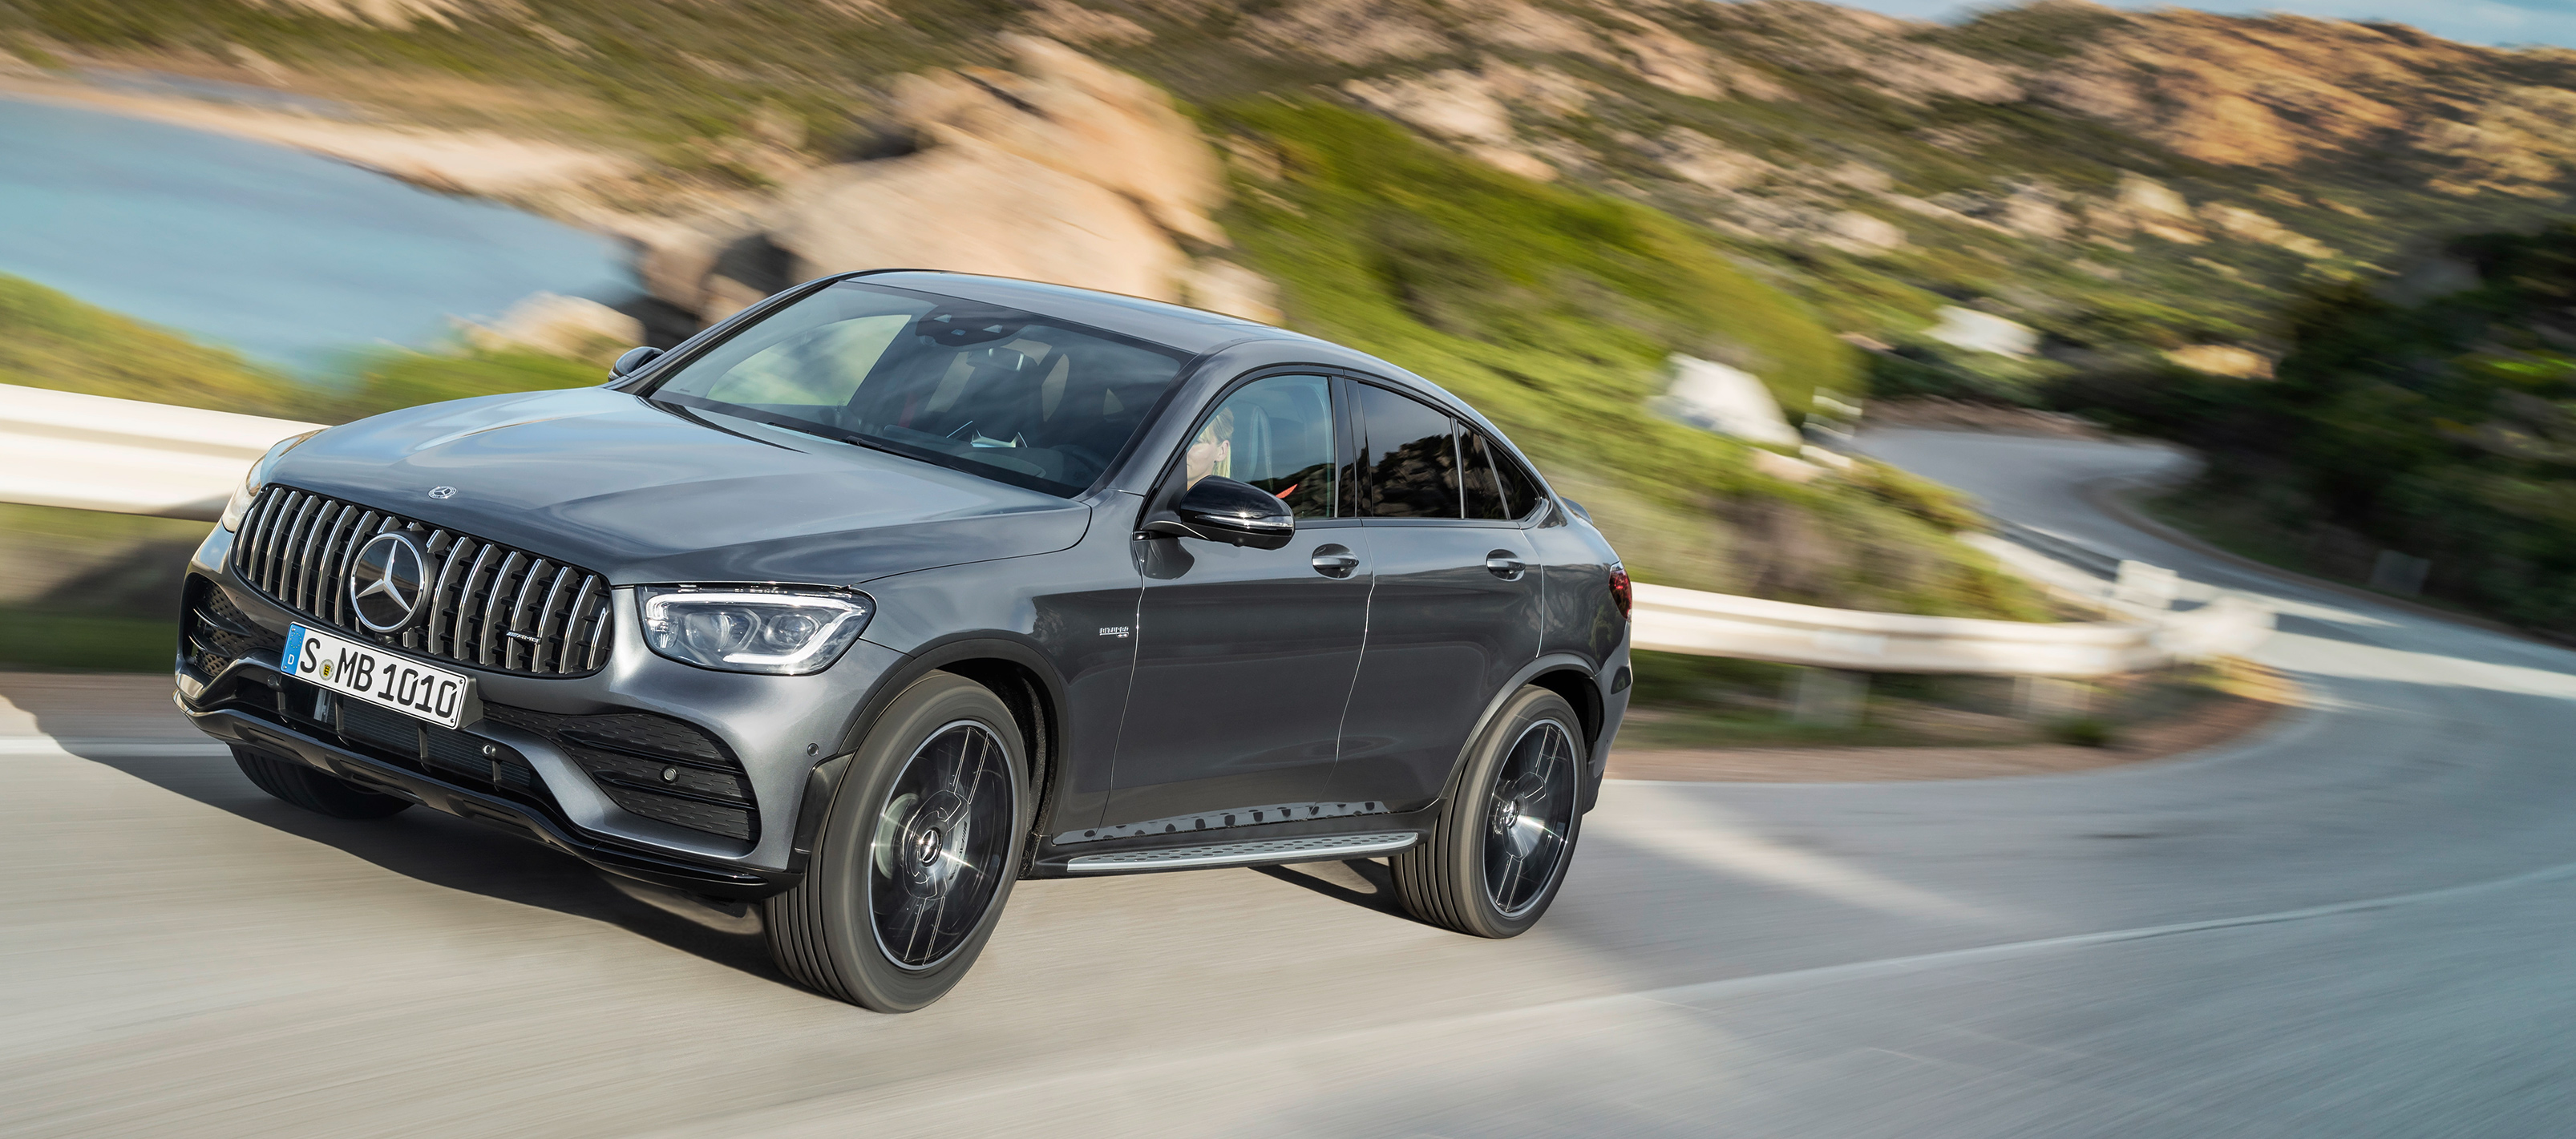 Nuevos Mercedes-Benz GLC 43 4MATIC SUV y Coupé